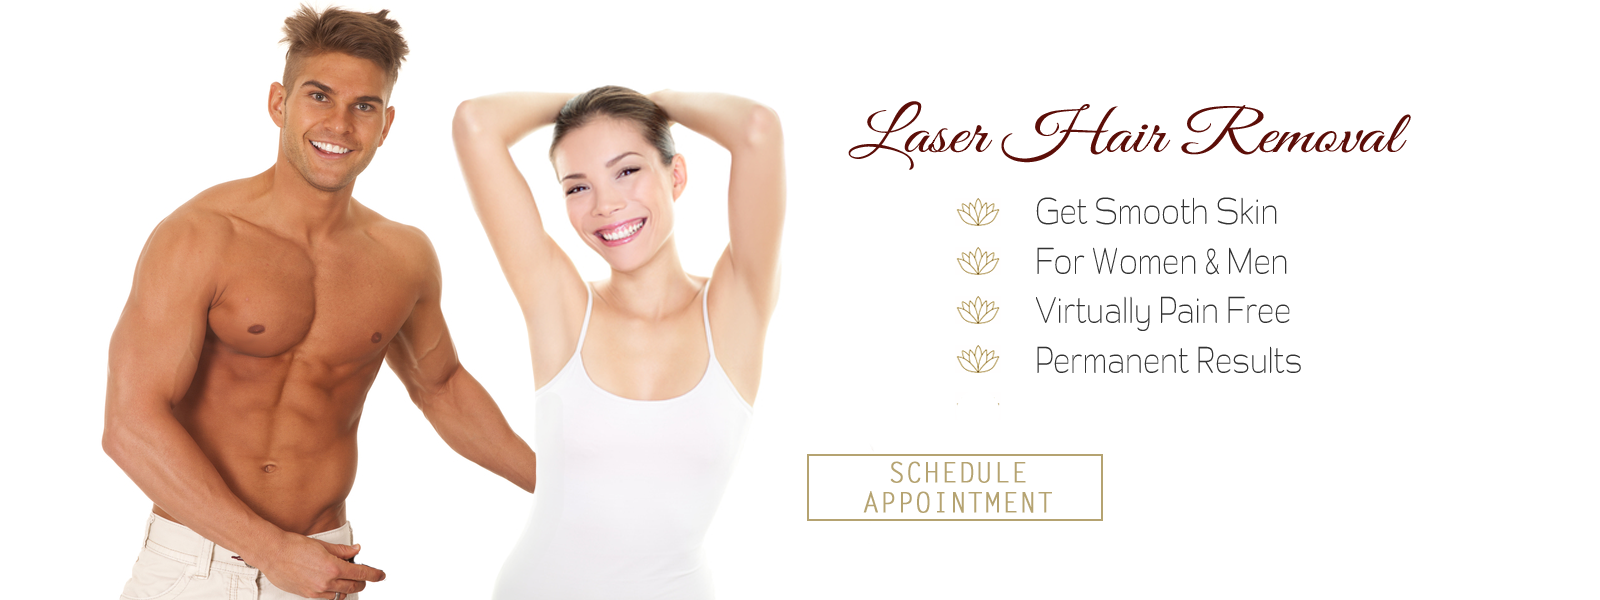 Laser Hair Removal Englewood NJ